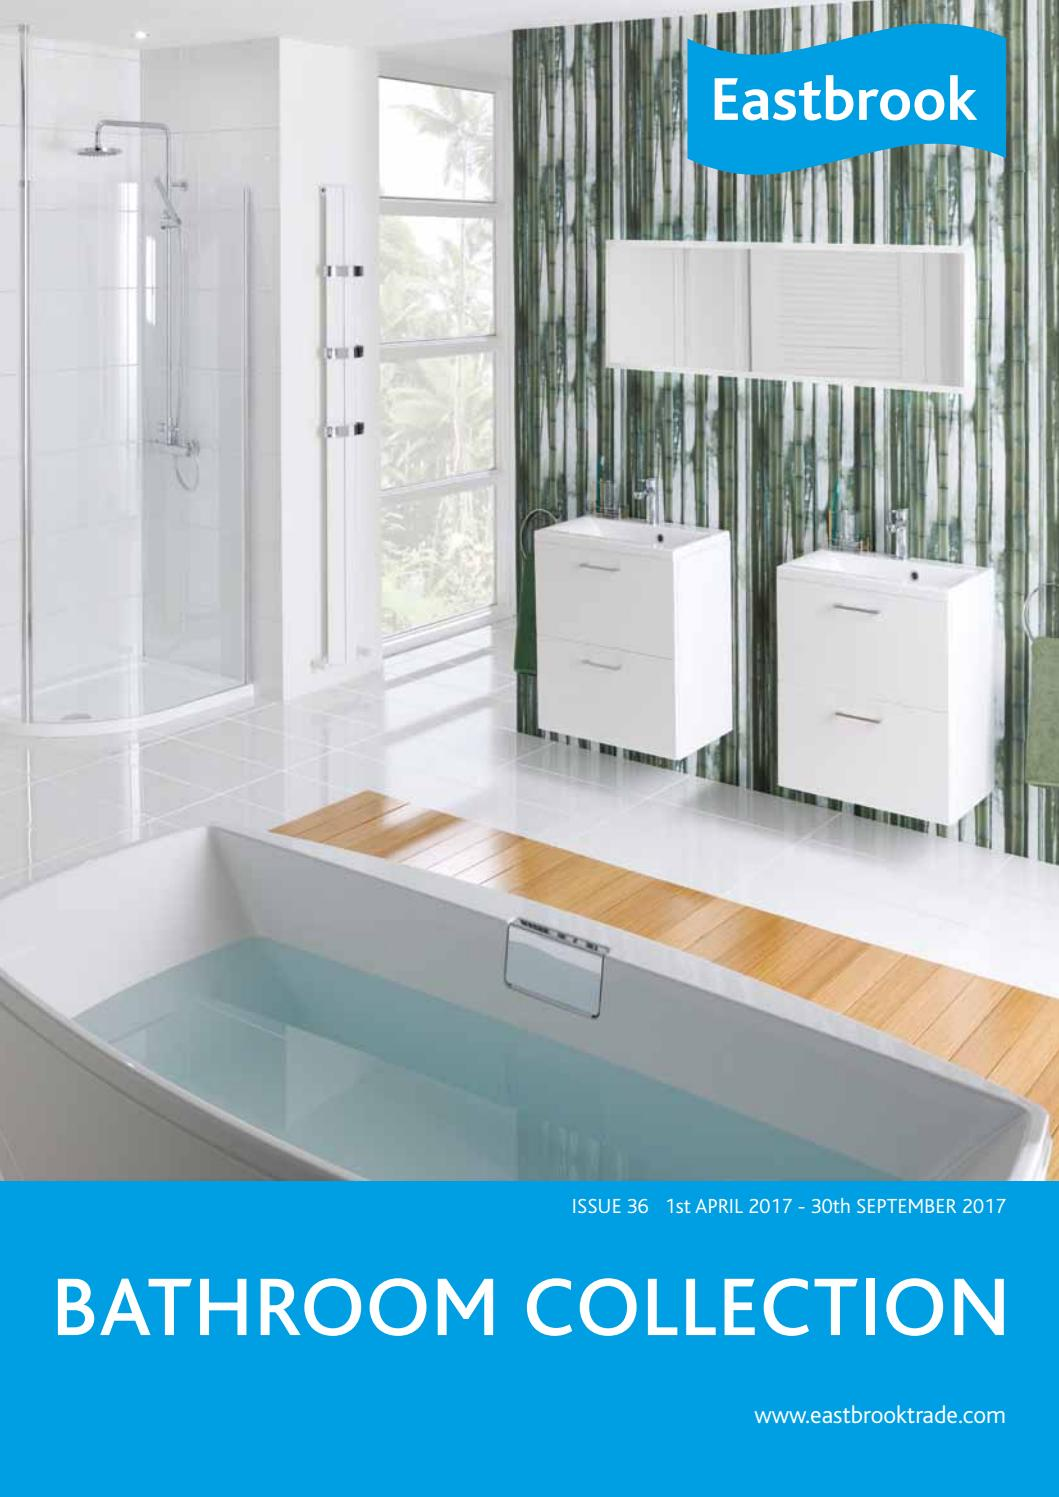 Eastbrook catalogue 2017 by merlin bathrooms issuu - Average cost of a new bathroom 2017 ...